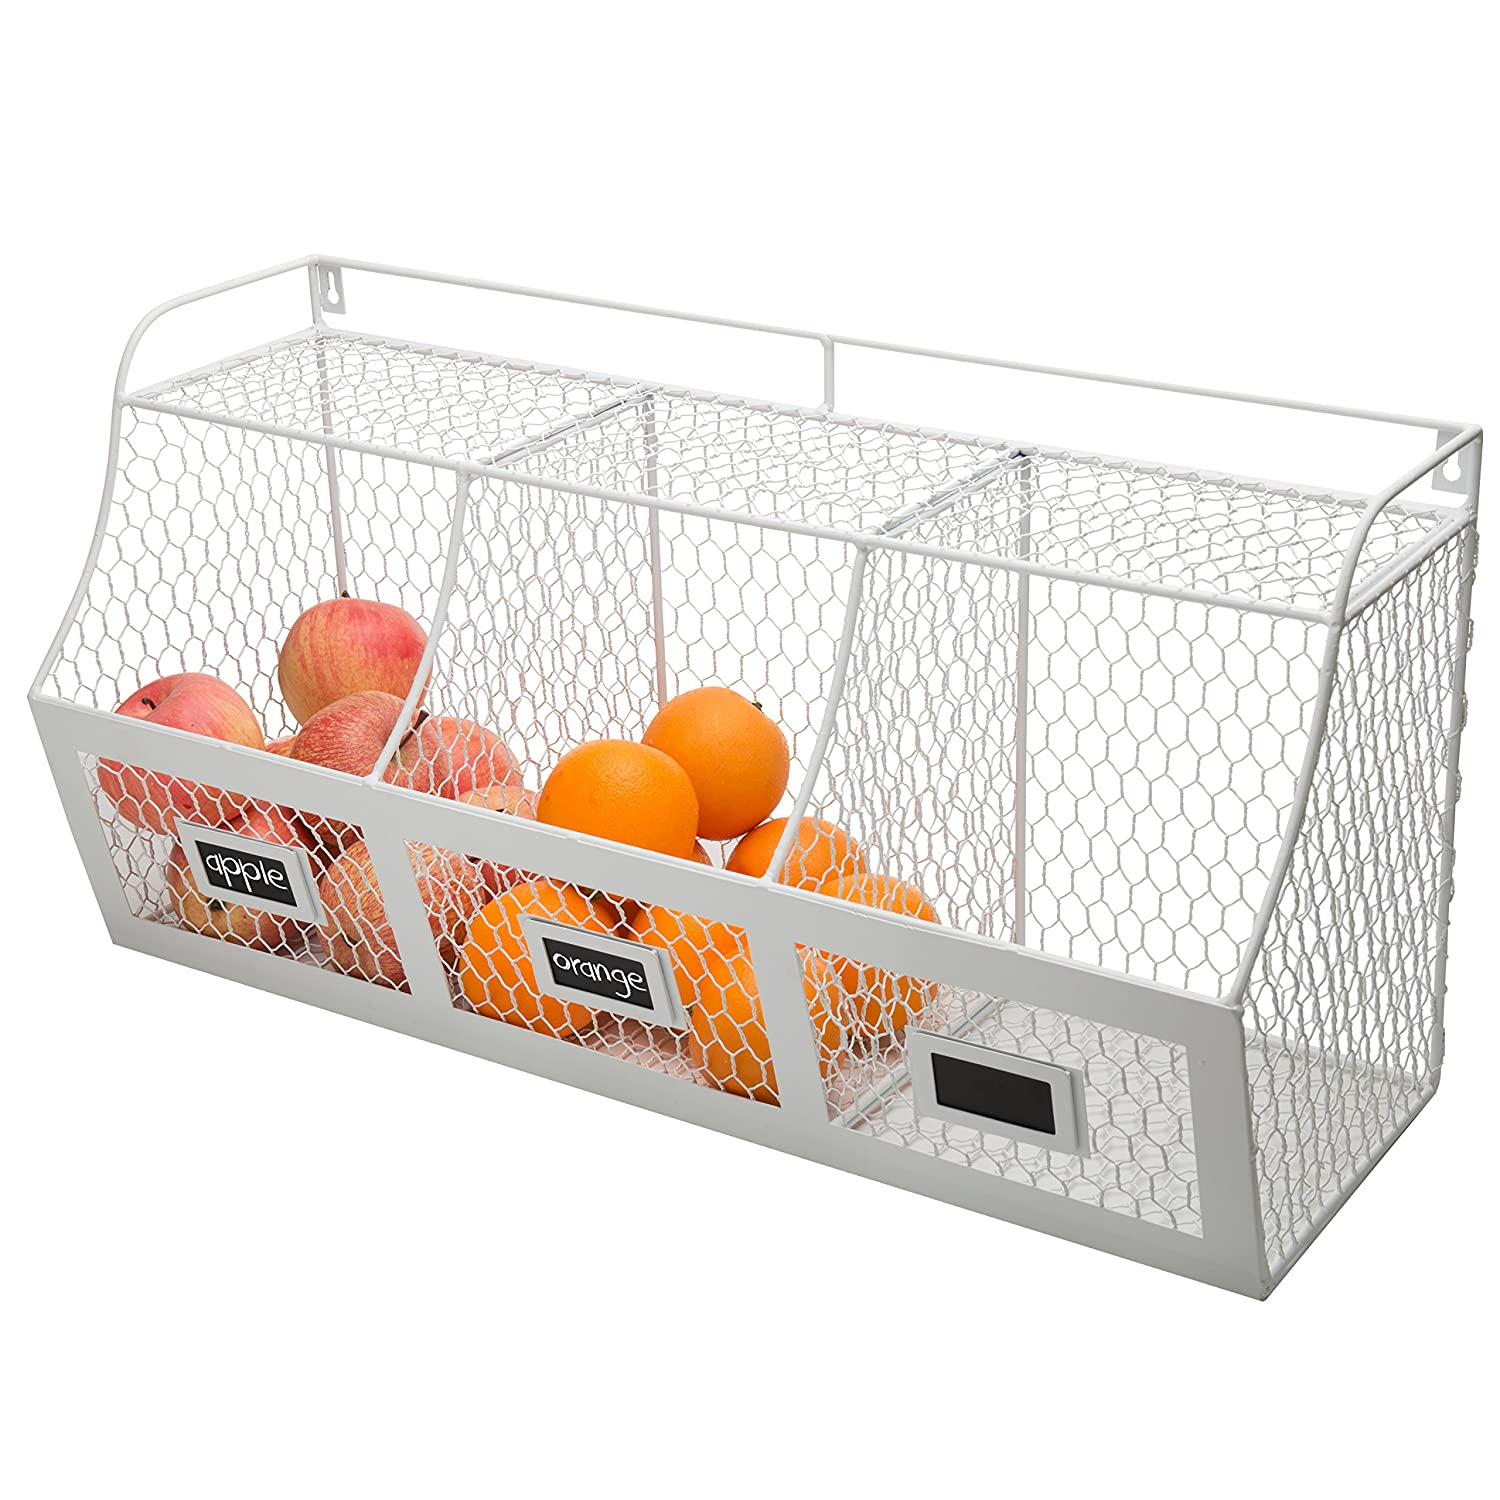 Amazon.com - Large White Metal Wire Wall Mounted Hanging Fruit ...